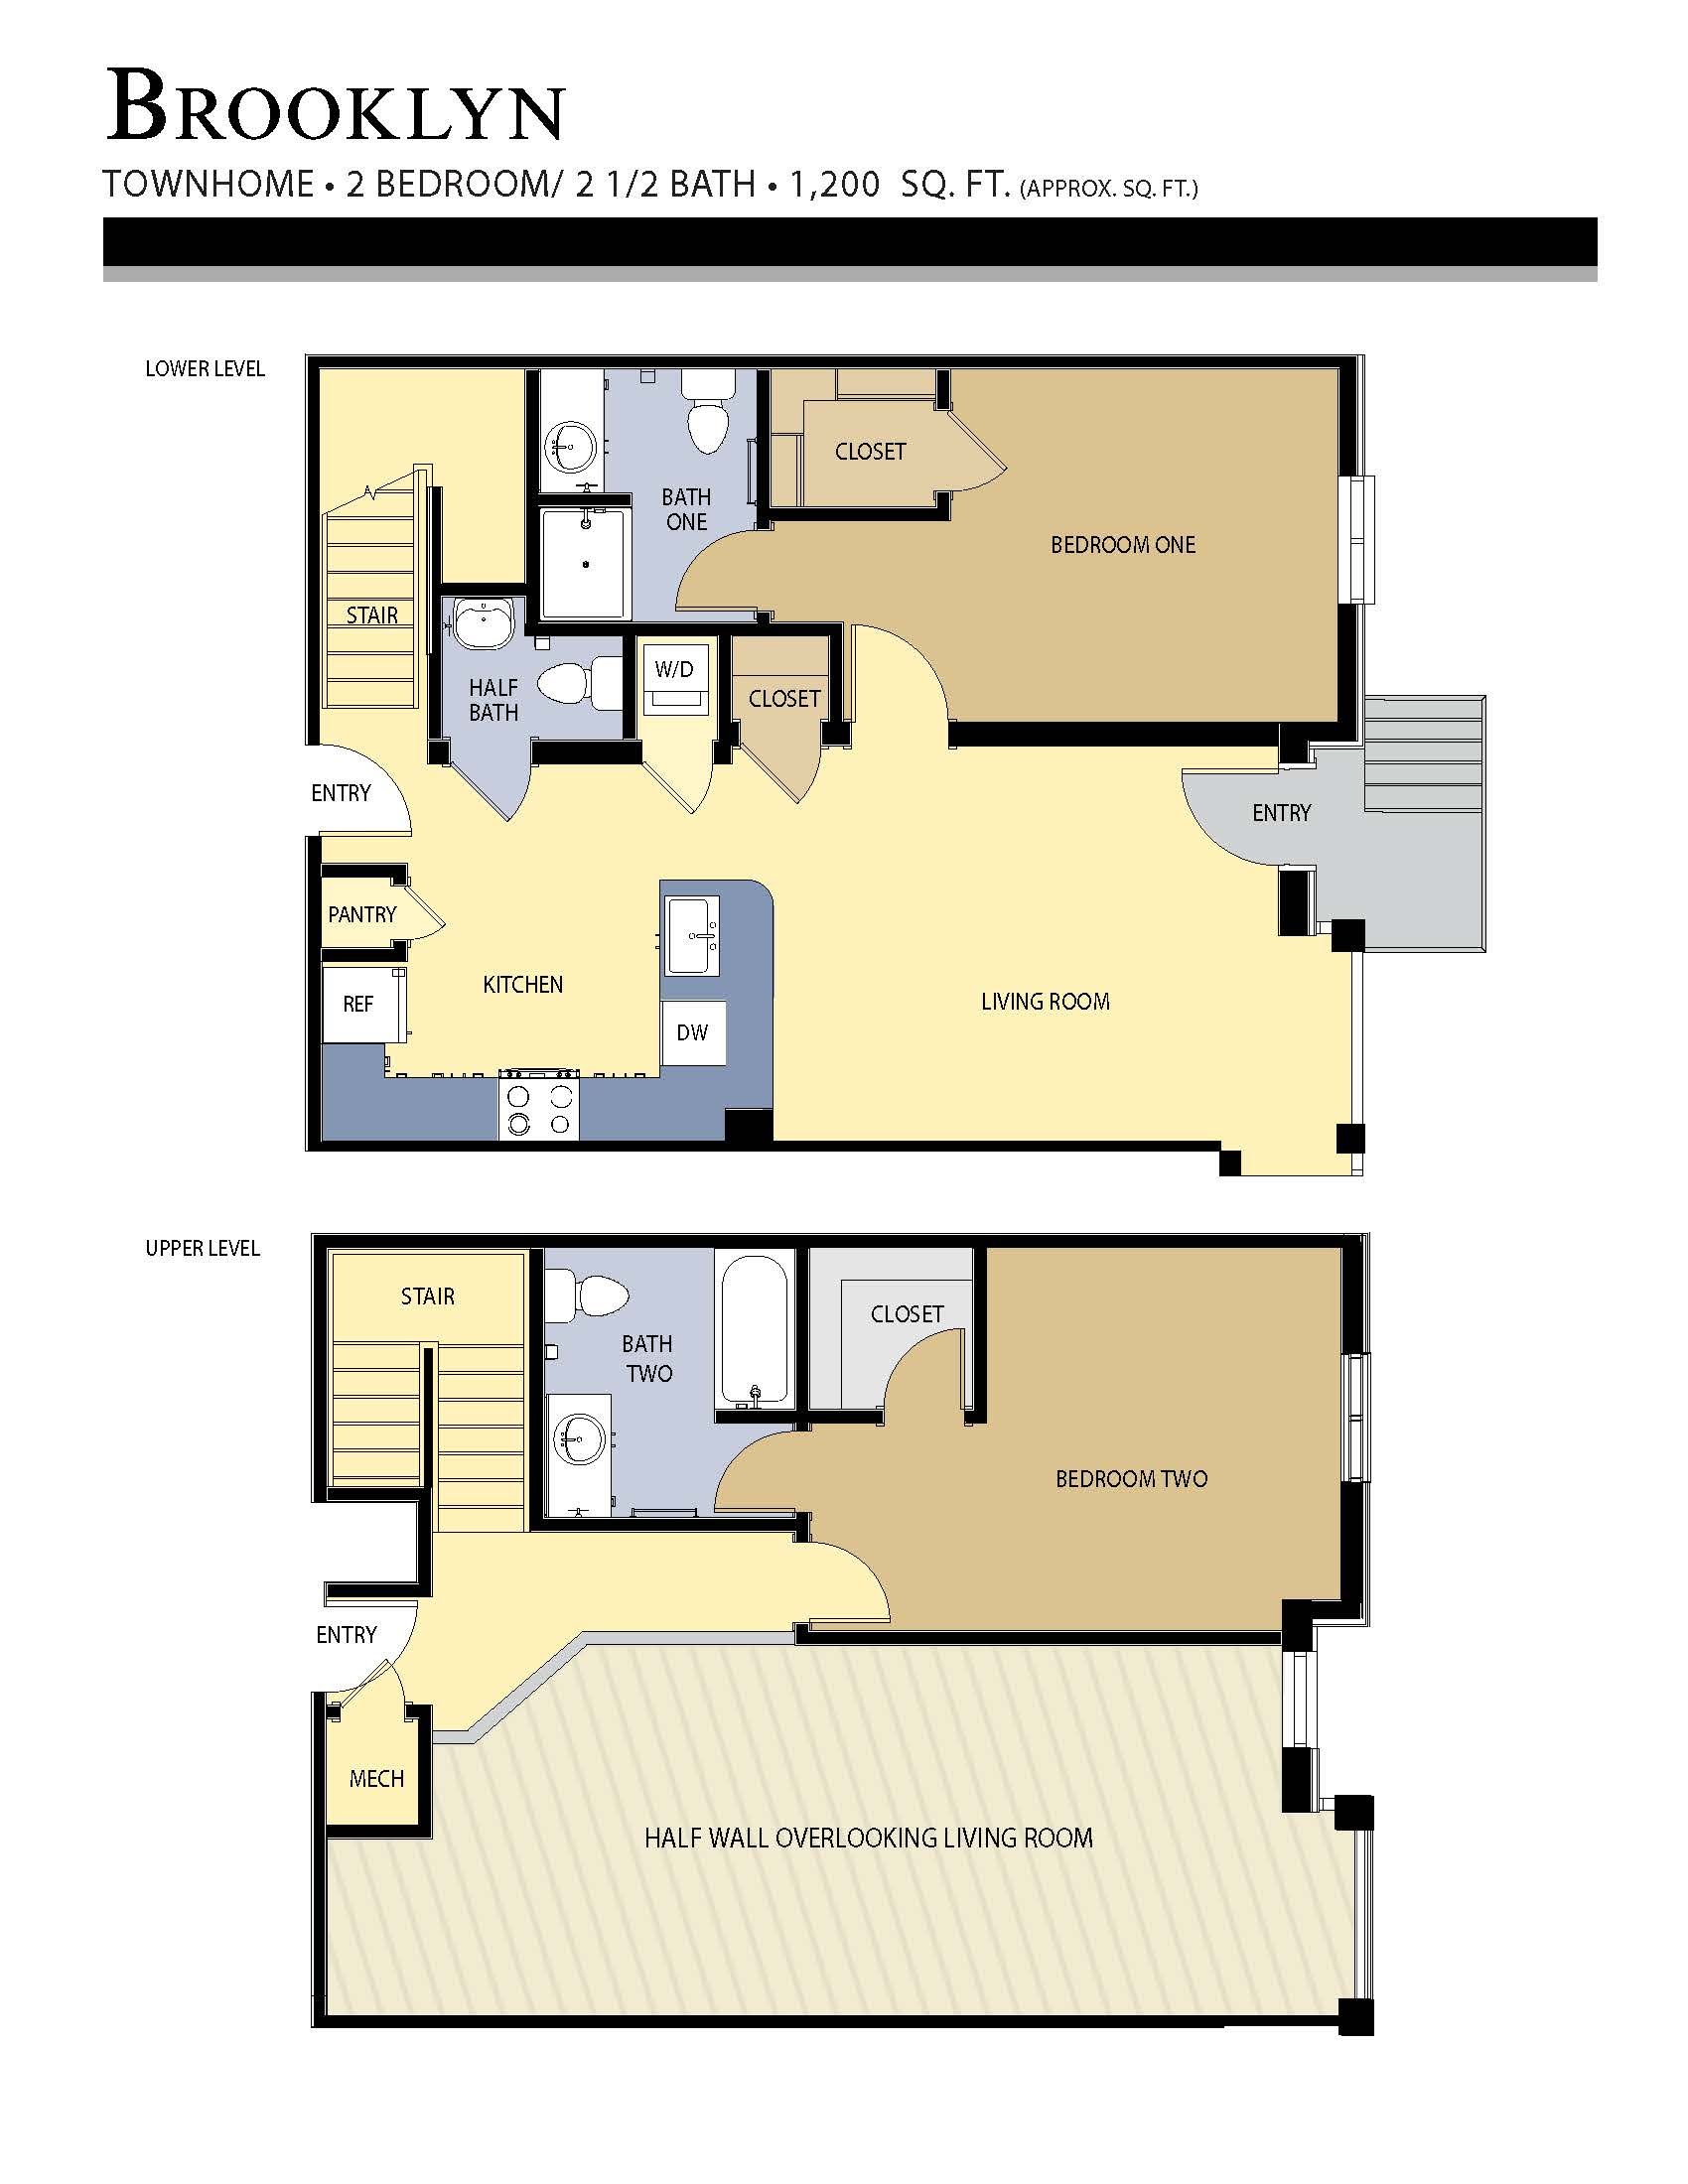 Brooklyn floor plan - 2 Bed / 2.5 Bath (1,200 Sq Ft)